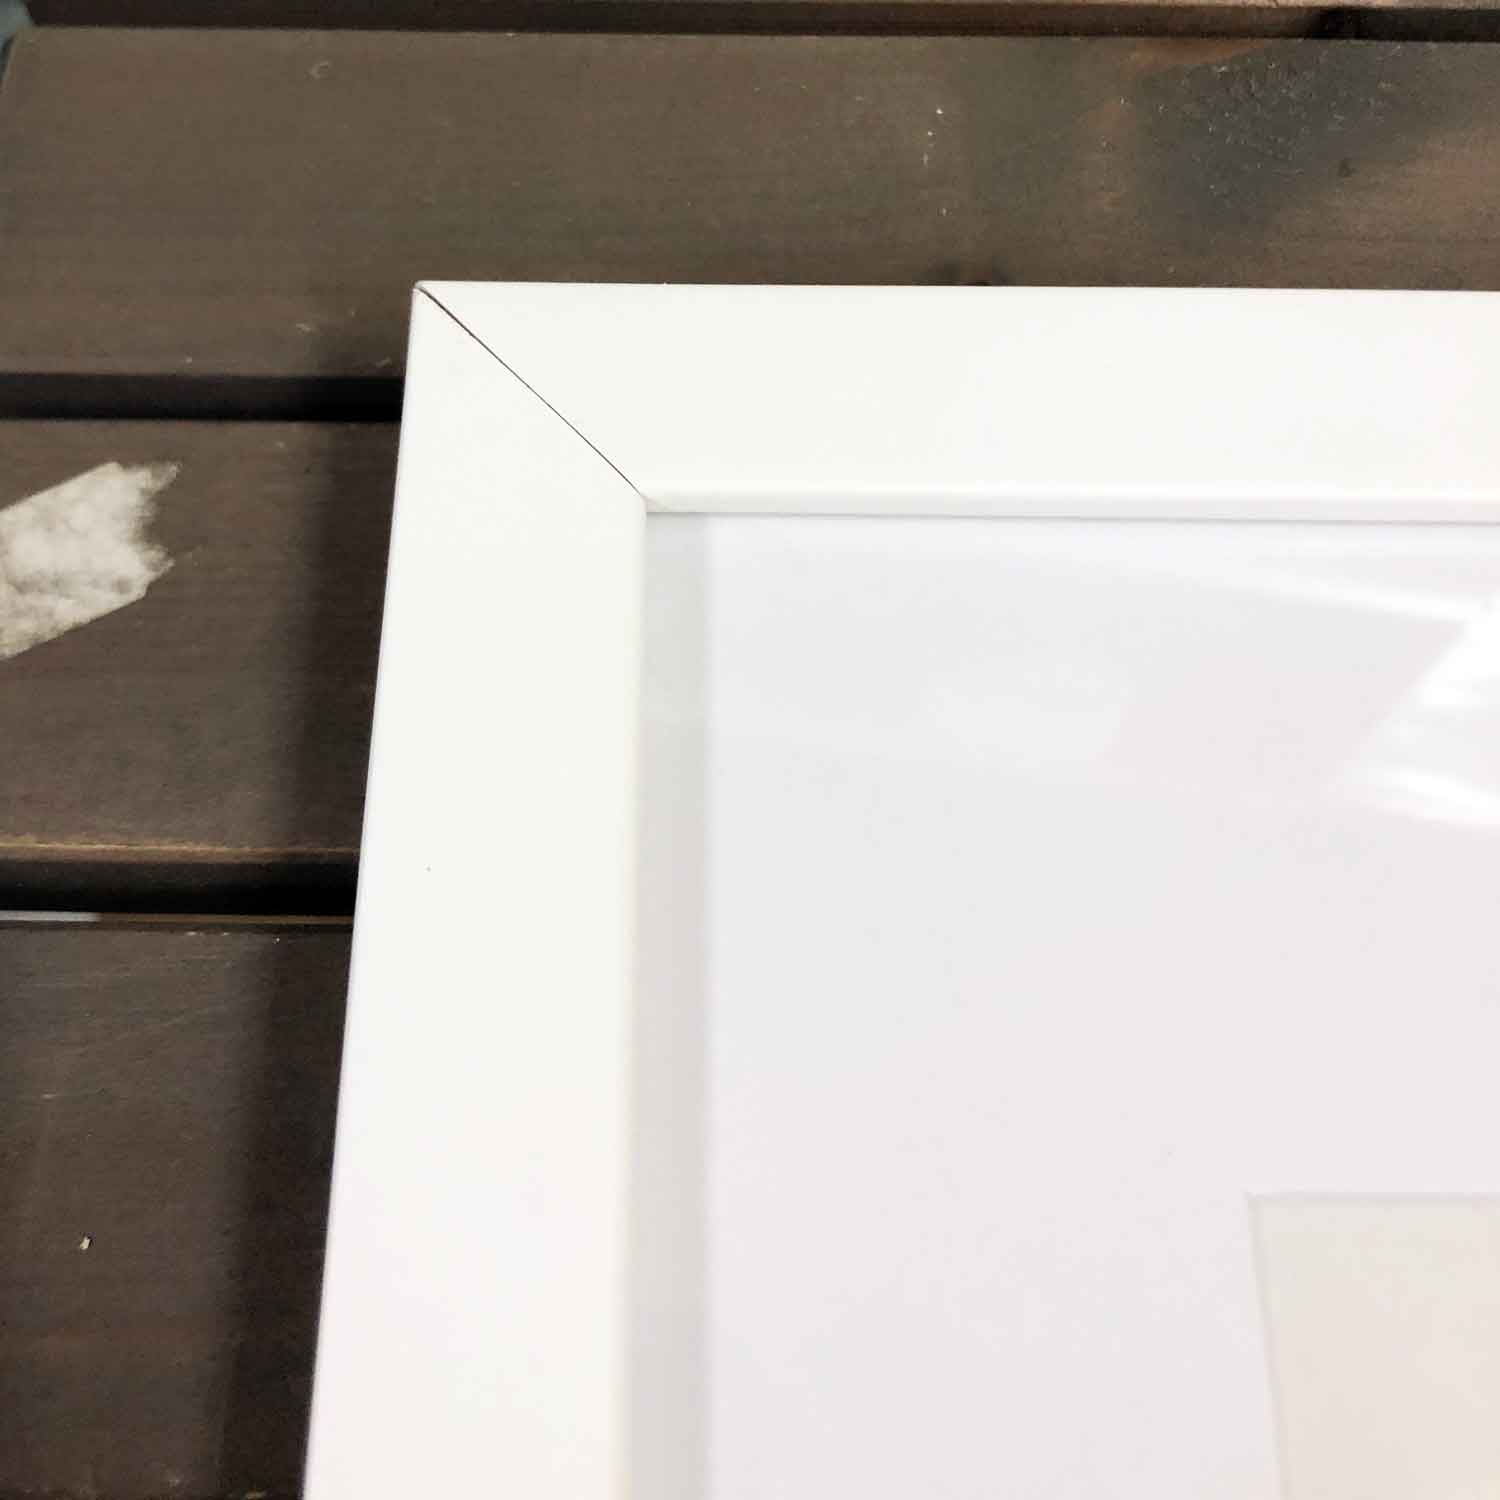 Place in Print Damaged Frame - Imperfect Corner Join